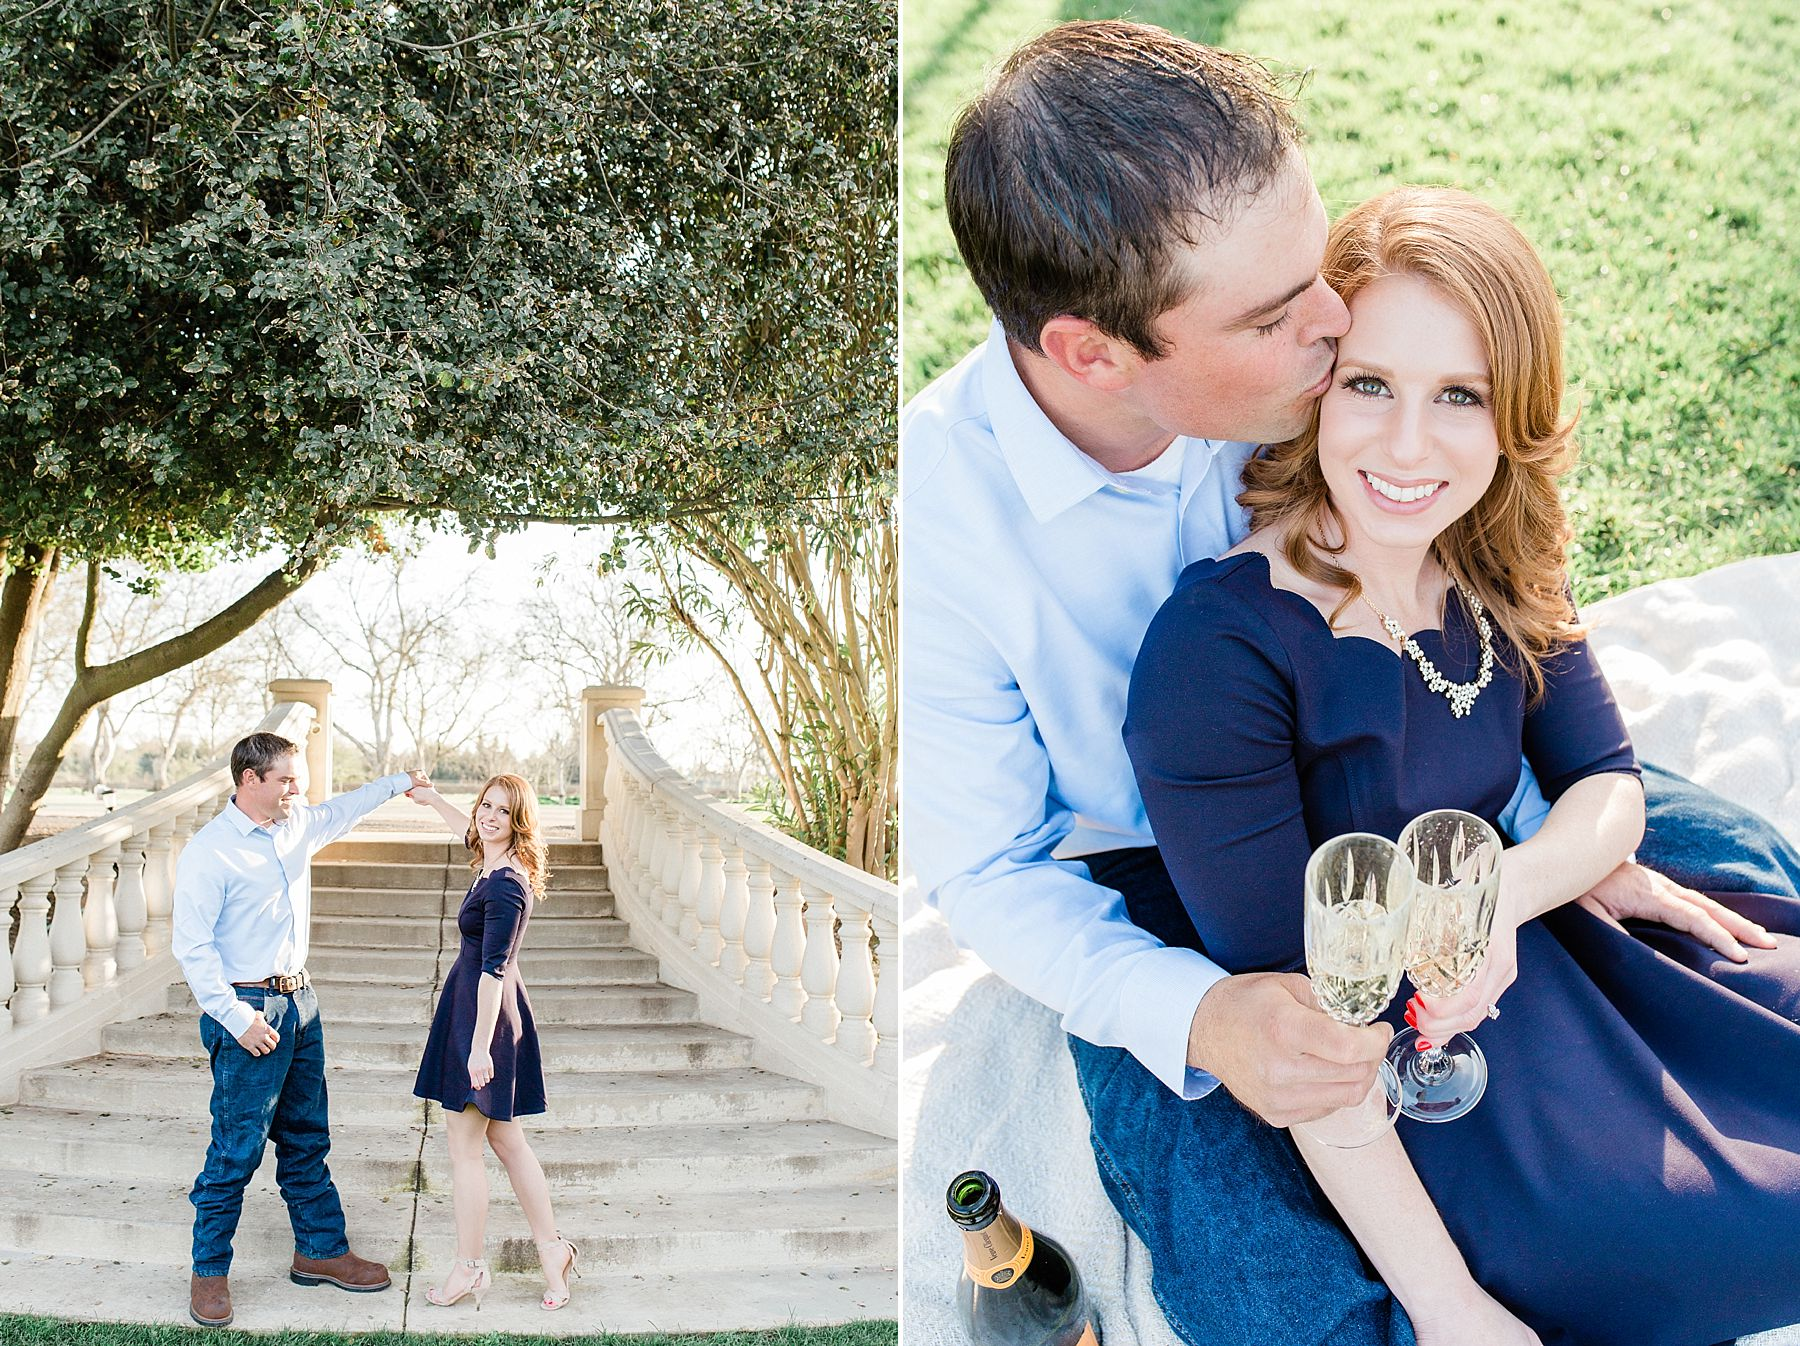 Viaggio Winery Engagement Session - Liz and TJ - Lodi Winery Wedding Photographer_0010.jpg